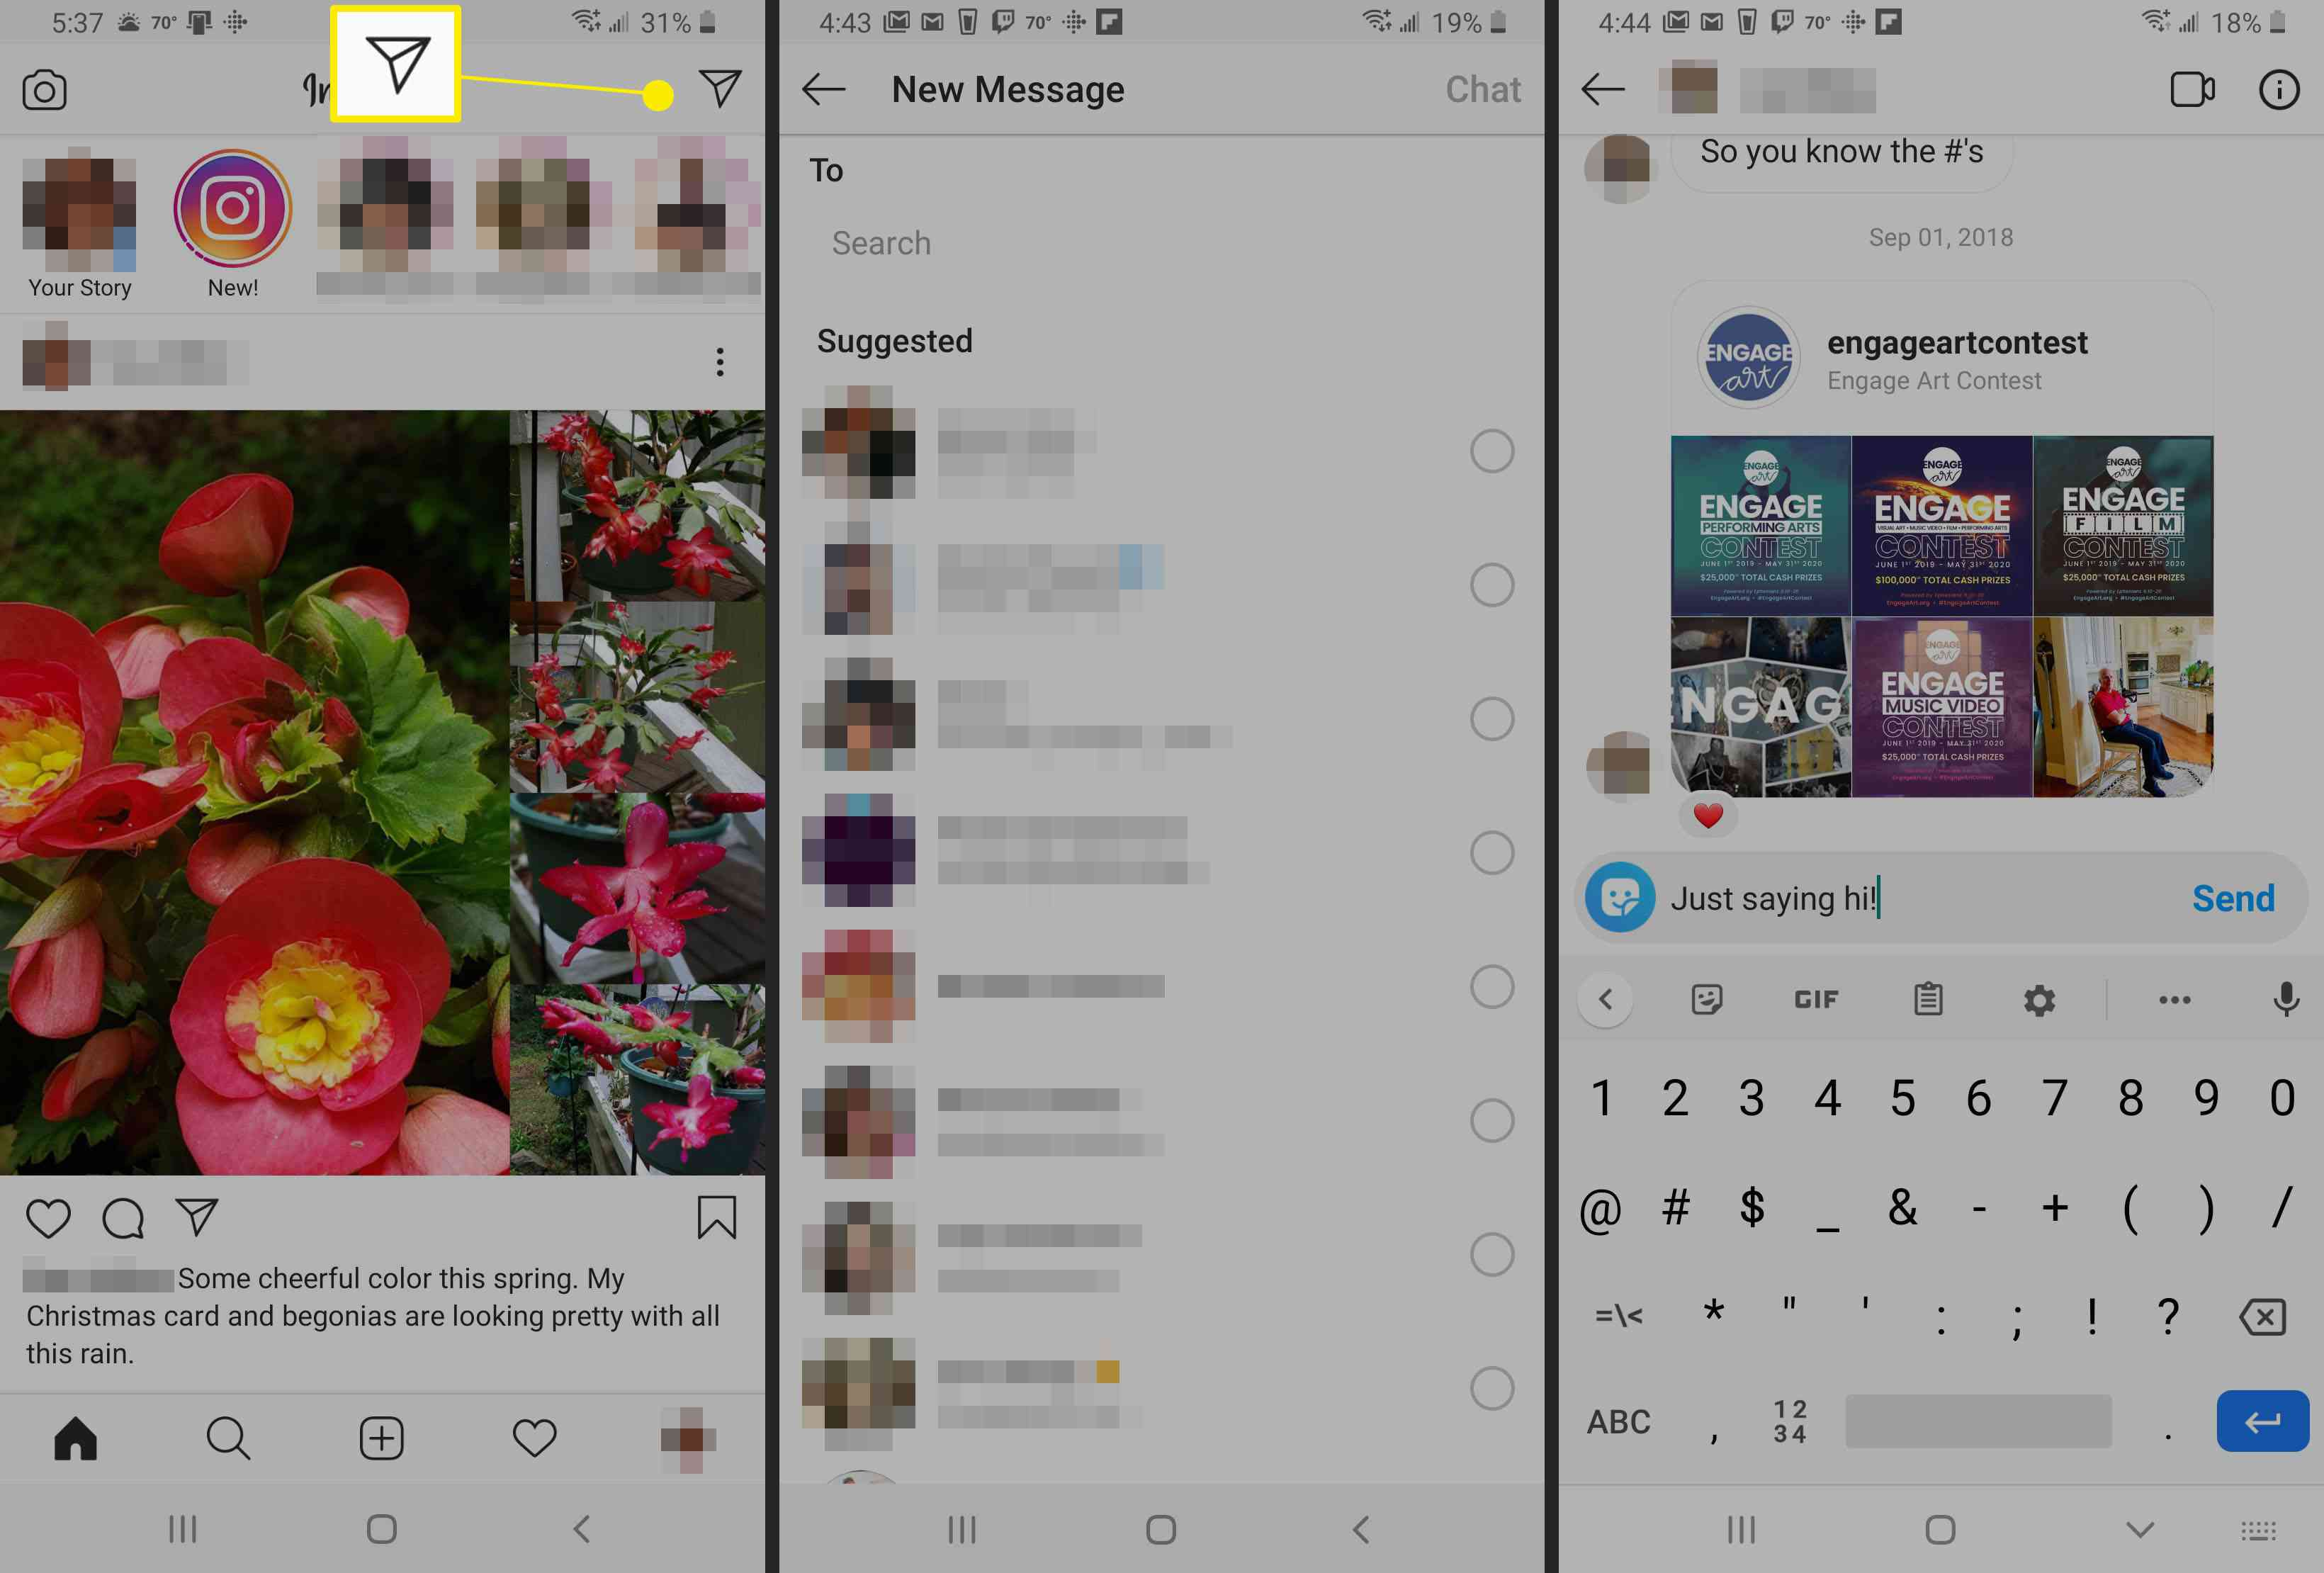 Chat within Instagram.